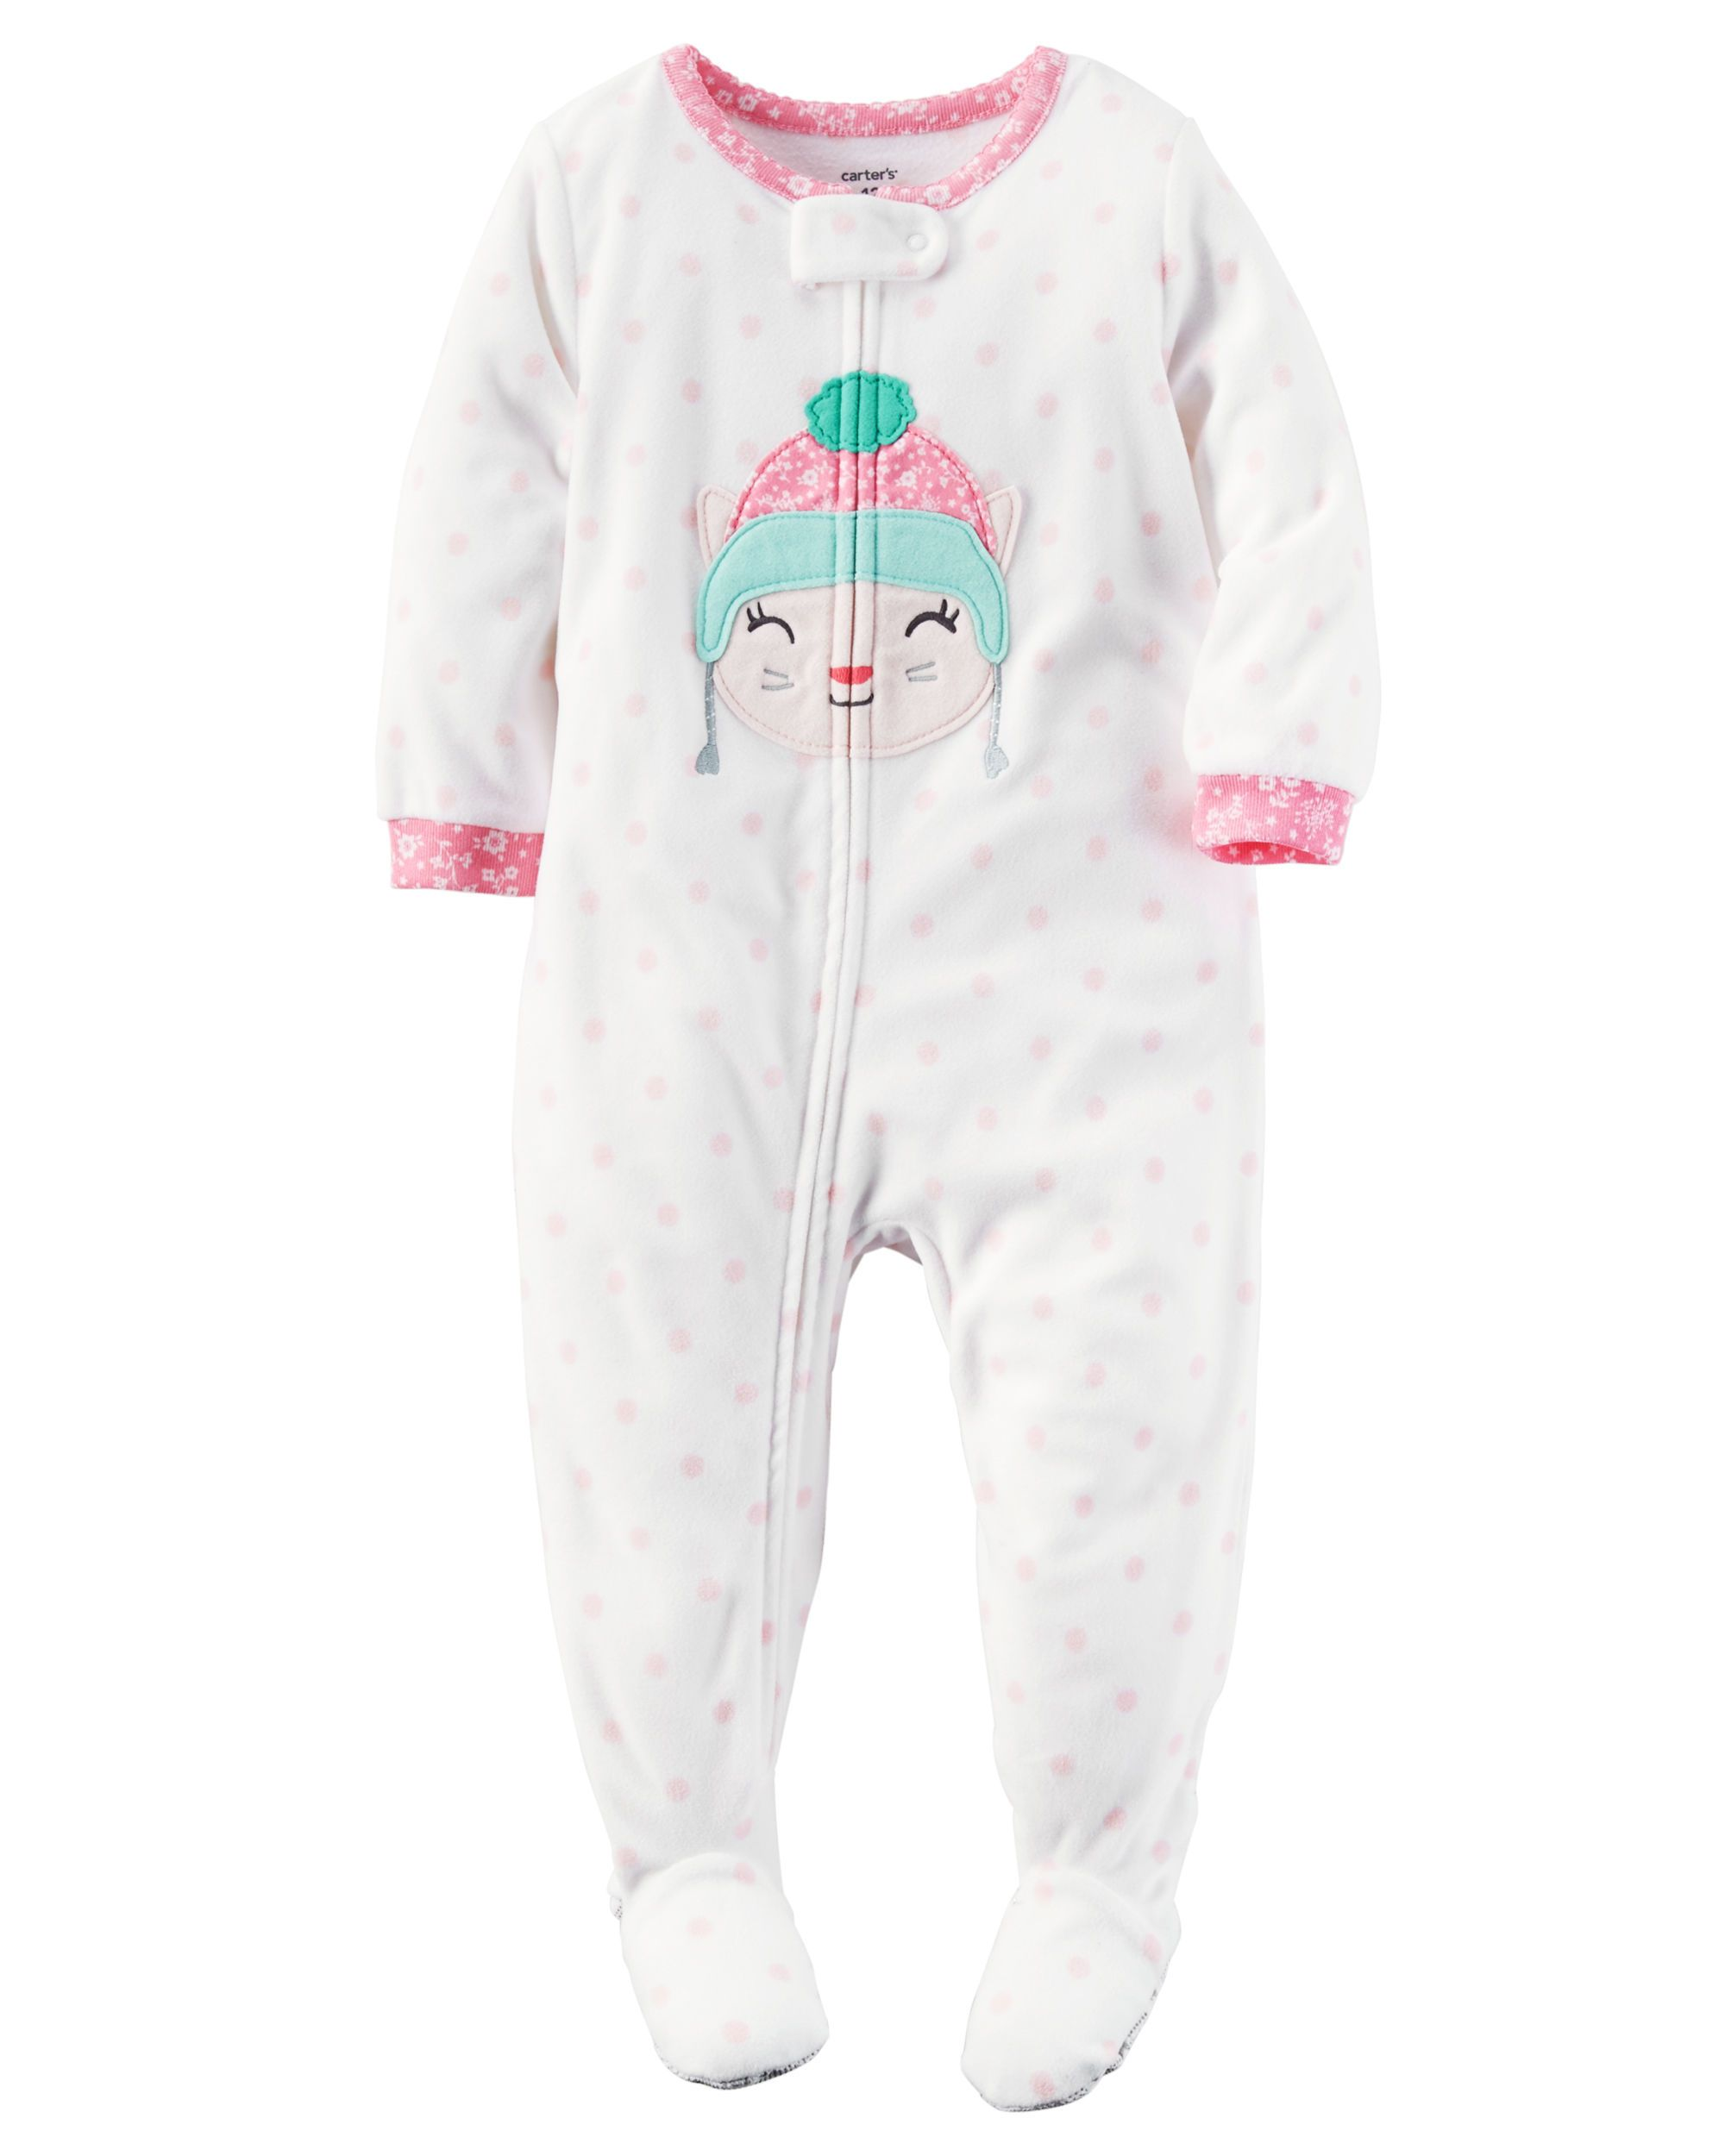 d12f007682 Crafted in snuggly fleece with an allover polka dot print